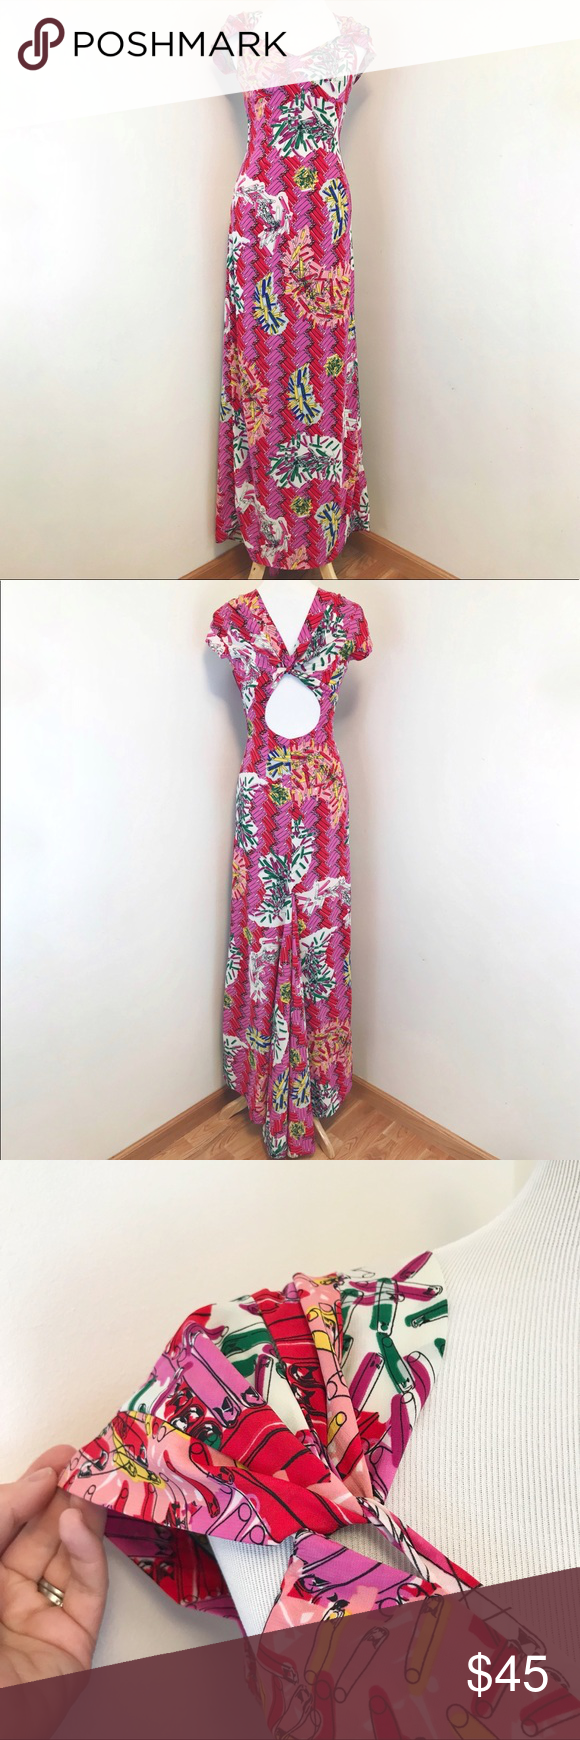 Zac posen for target safety pin print gown dress my posh closet